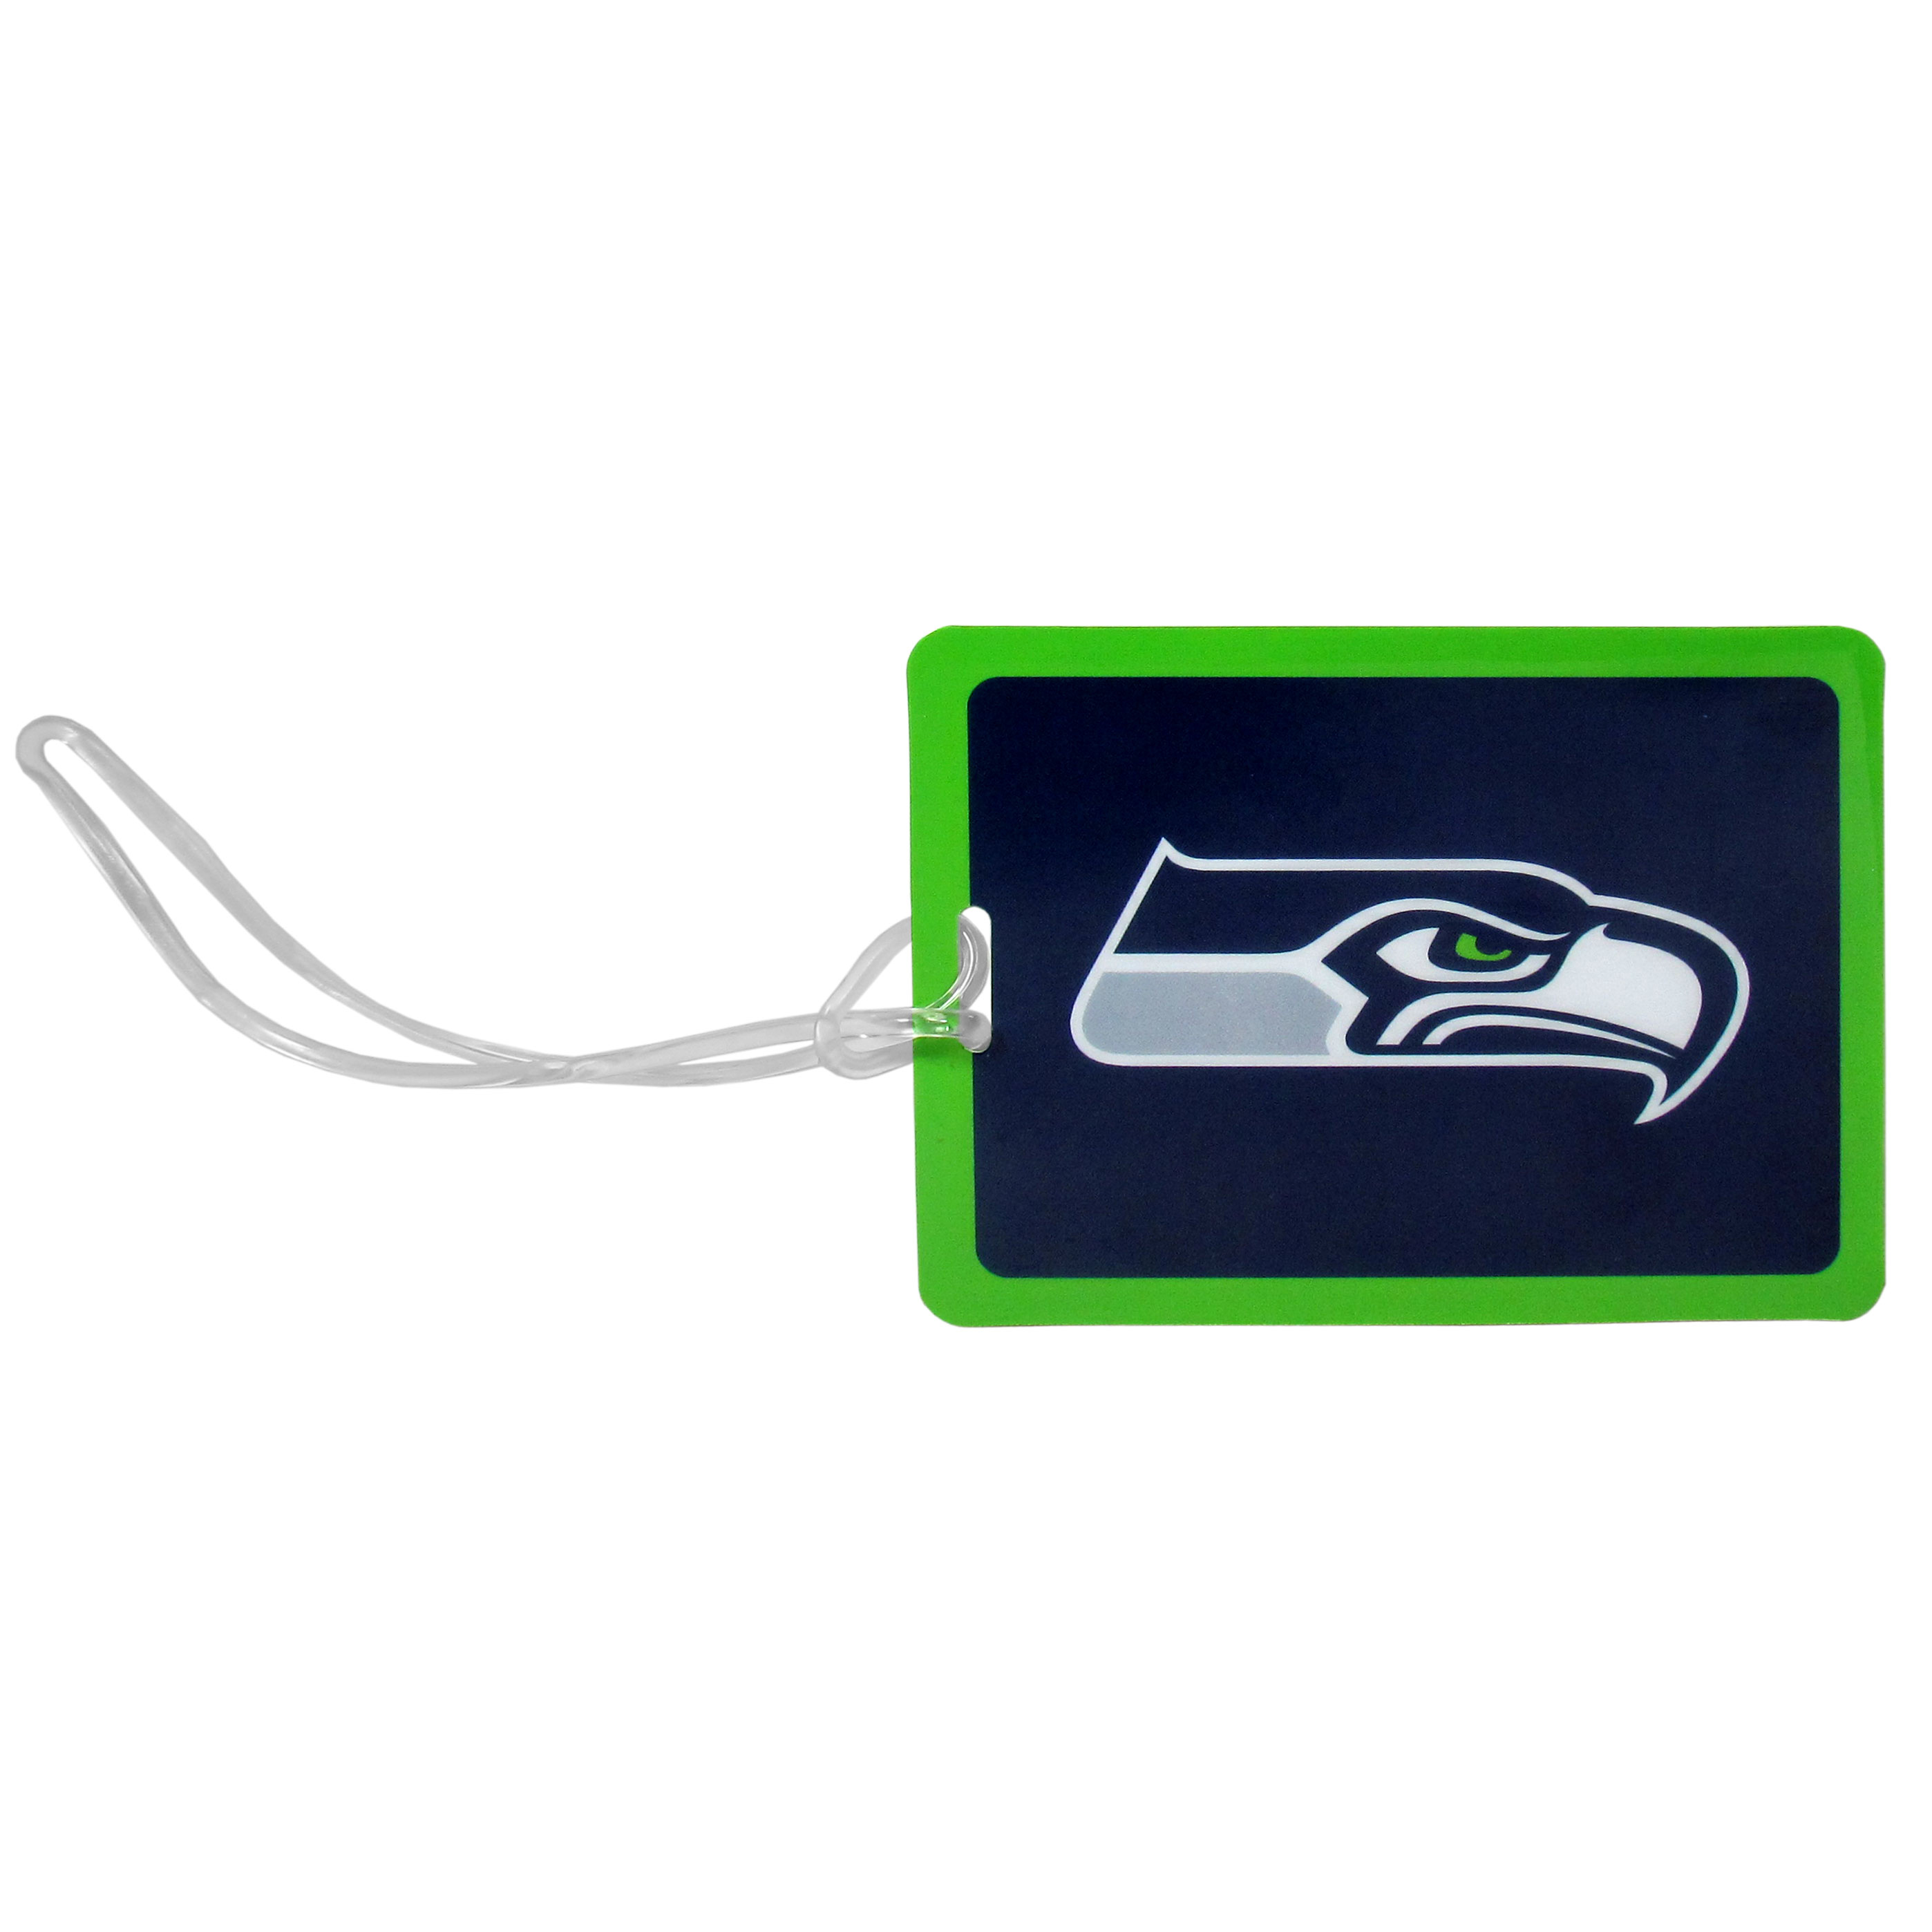 Seattle Seahawks Vinyl Luggage Tag - Tired of trying to spot your suitcase or bag in a sea of luggage? Try our large and colorful Seattle Seahawks luggage tag set. The tag is 4x3 inches and has a 5 inch cord to attach it easily to your bags, backpacks or luggage. The front of the tag features the team logo in a bright, team colored background and you can write you name, address and phone number on the back of the tag.